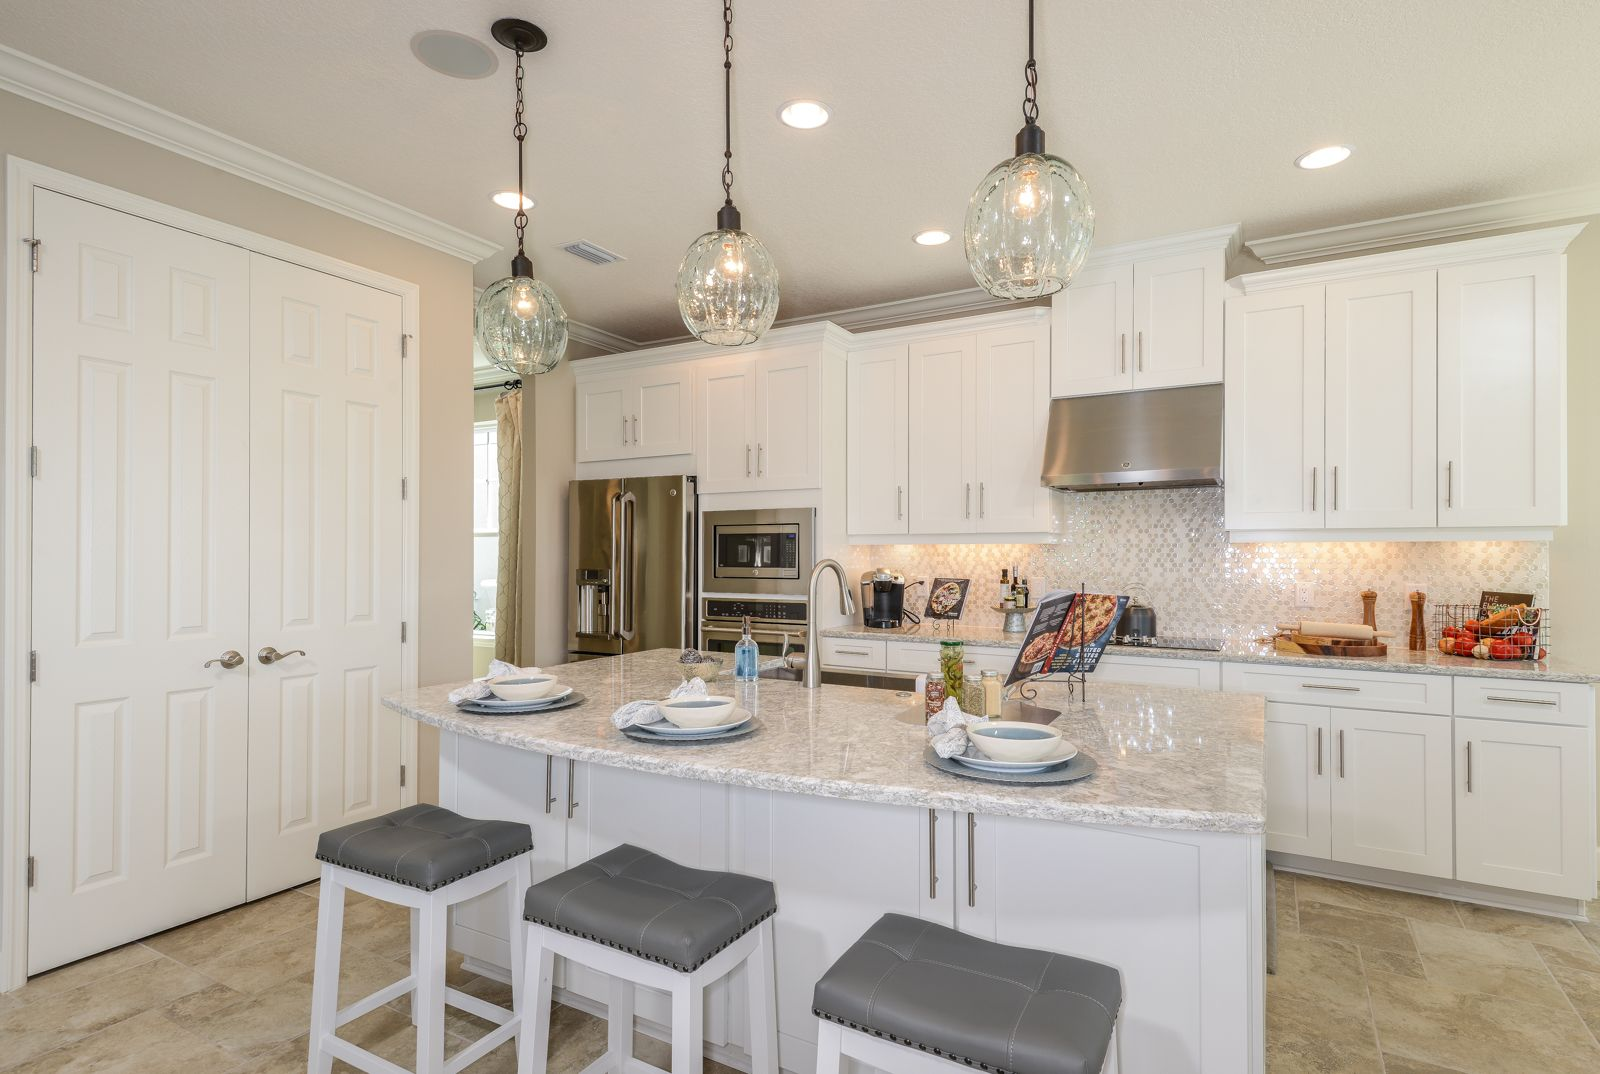 Cypress Chase Newhome Design Dreamhome Luxuryhomes Elegant Living Instahome Architecture Realestate Archdaily Archilov New Homes Home Kitchen Decor